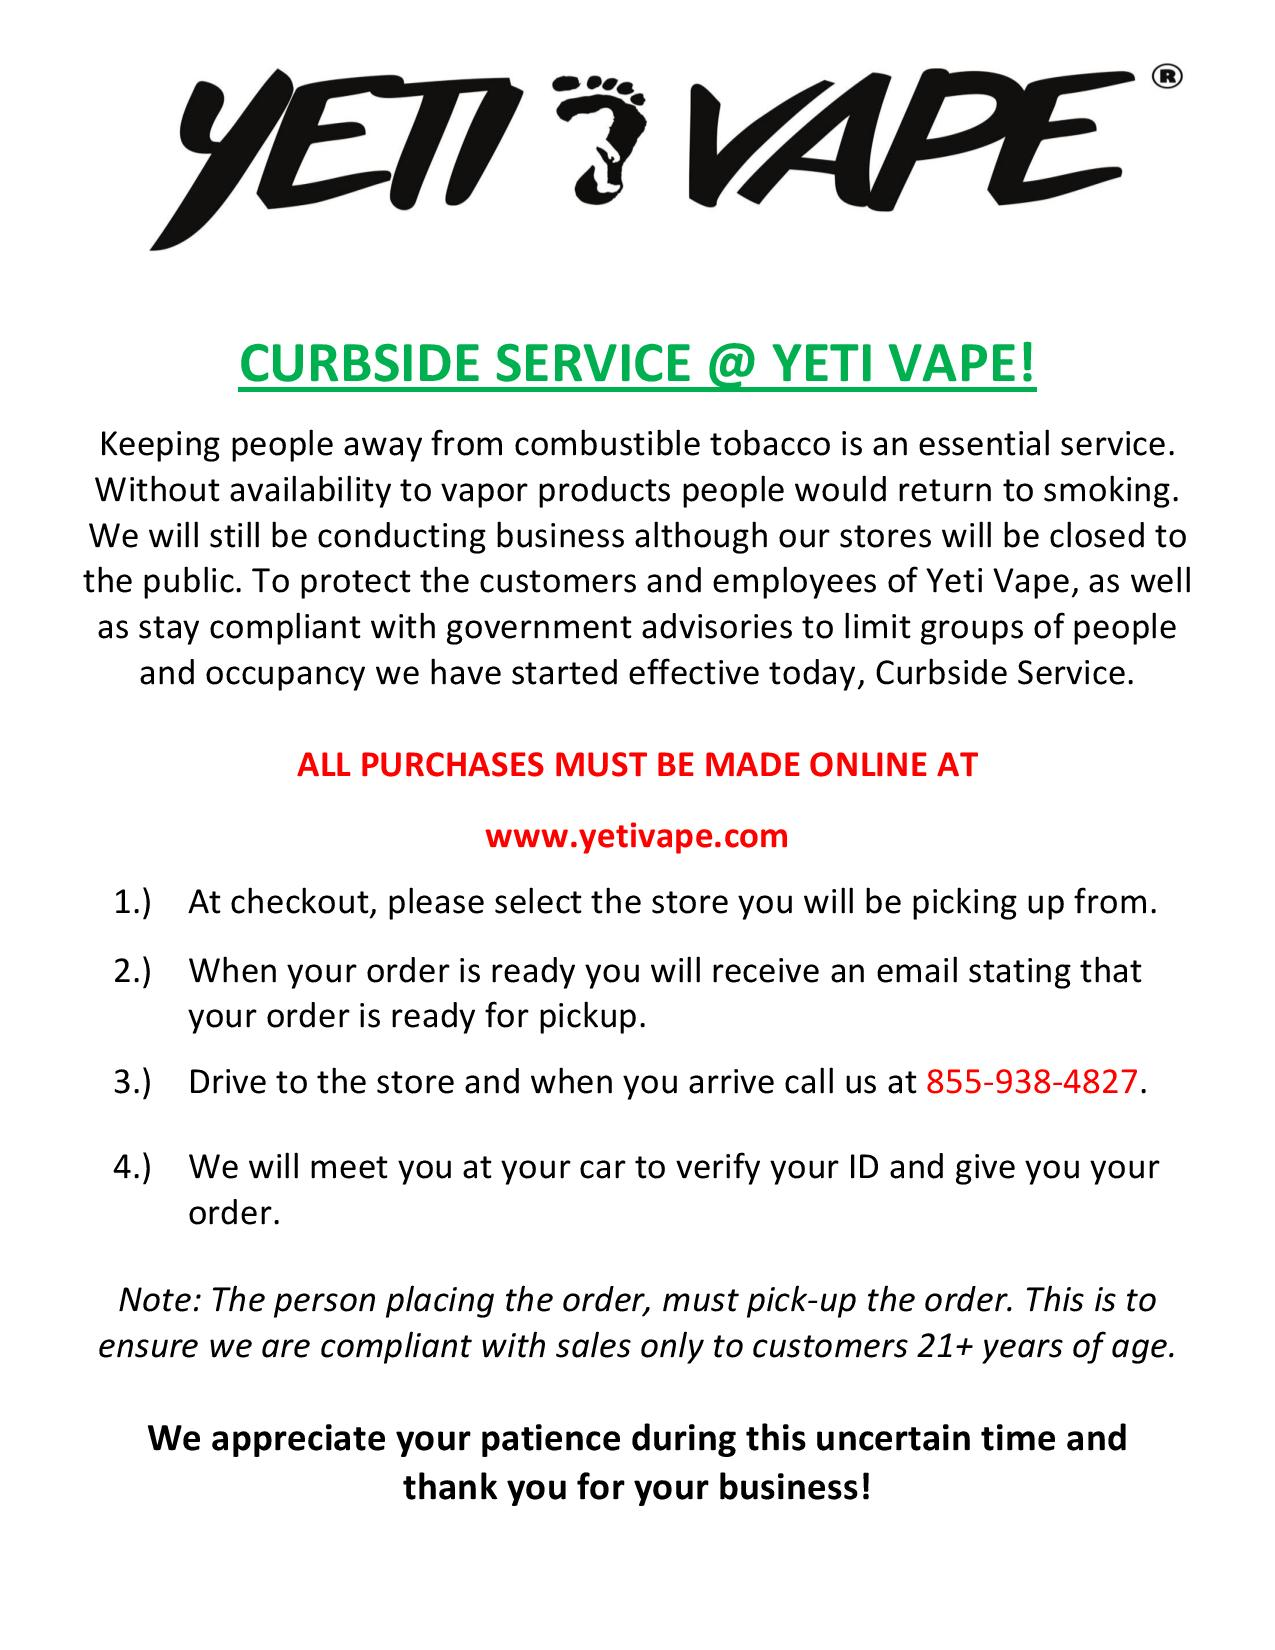 curbside-service-3-17-20-page-001.jpg